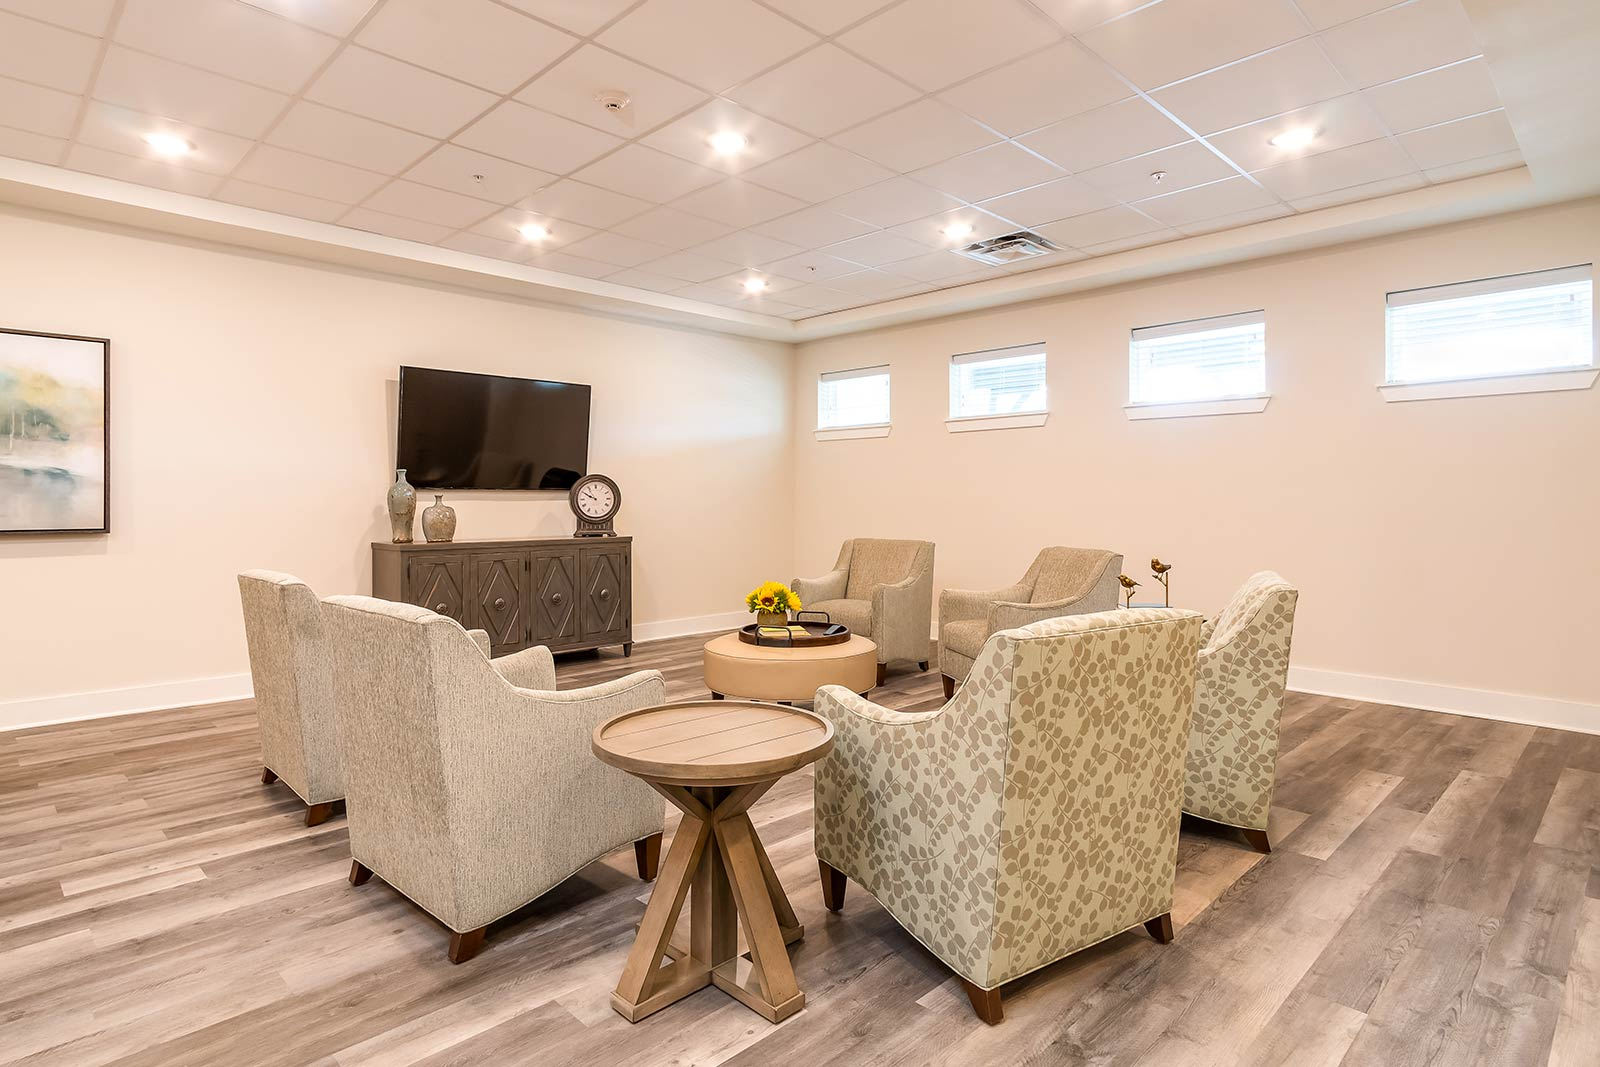 Lounge Area With TV, Couches And Chairs In Our Warner Robins GA Assisted Living And Memory Care Community